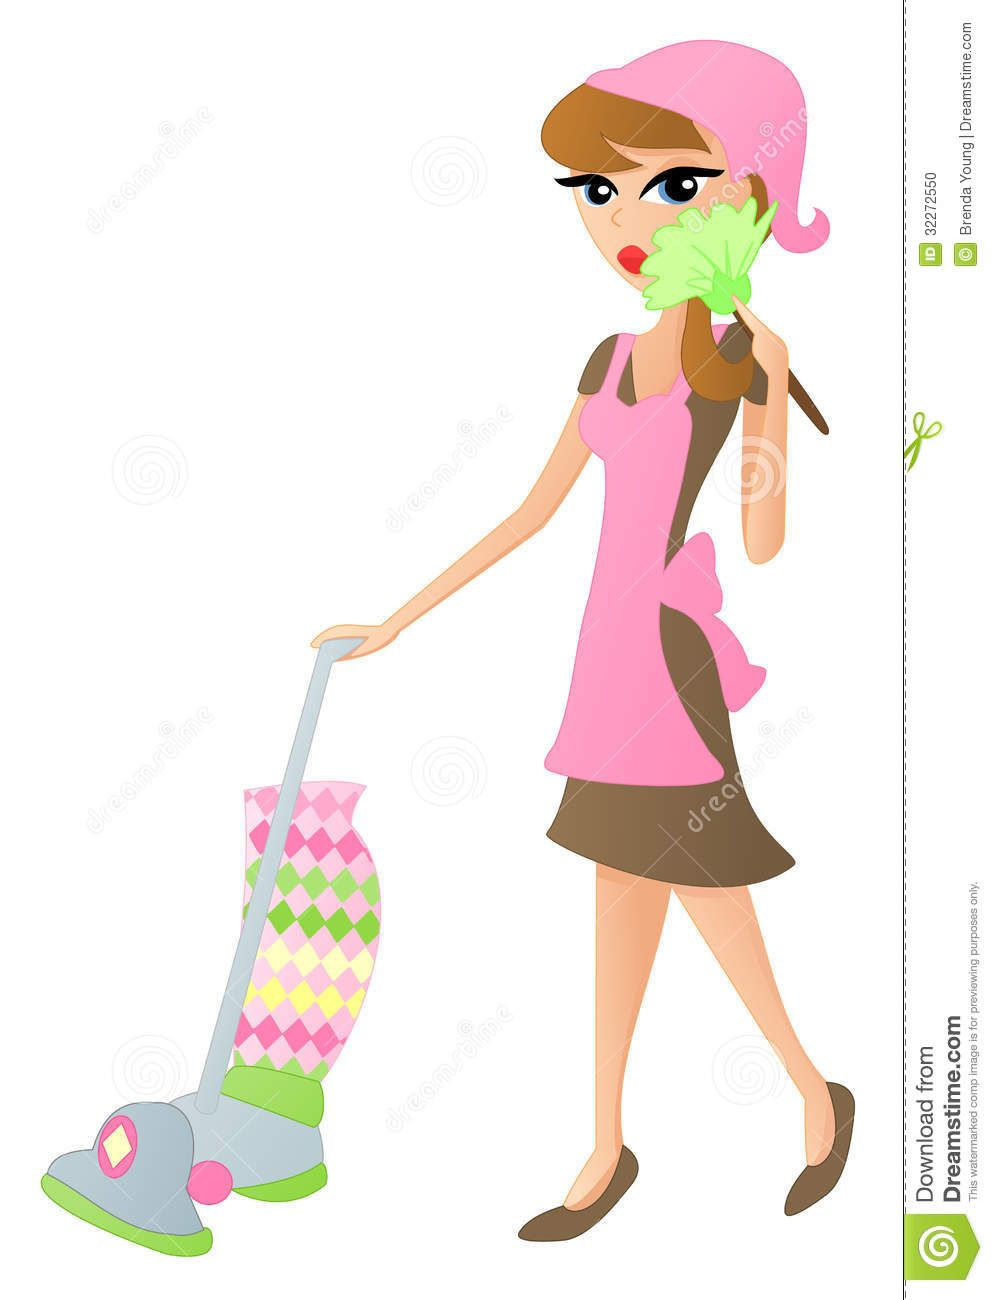 Maid clipart cleaning lady. Free download cartoon for